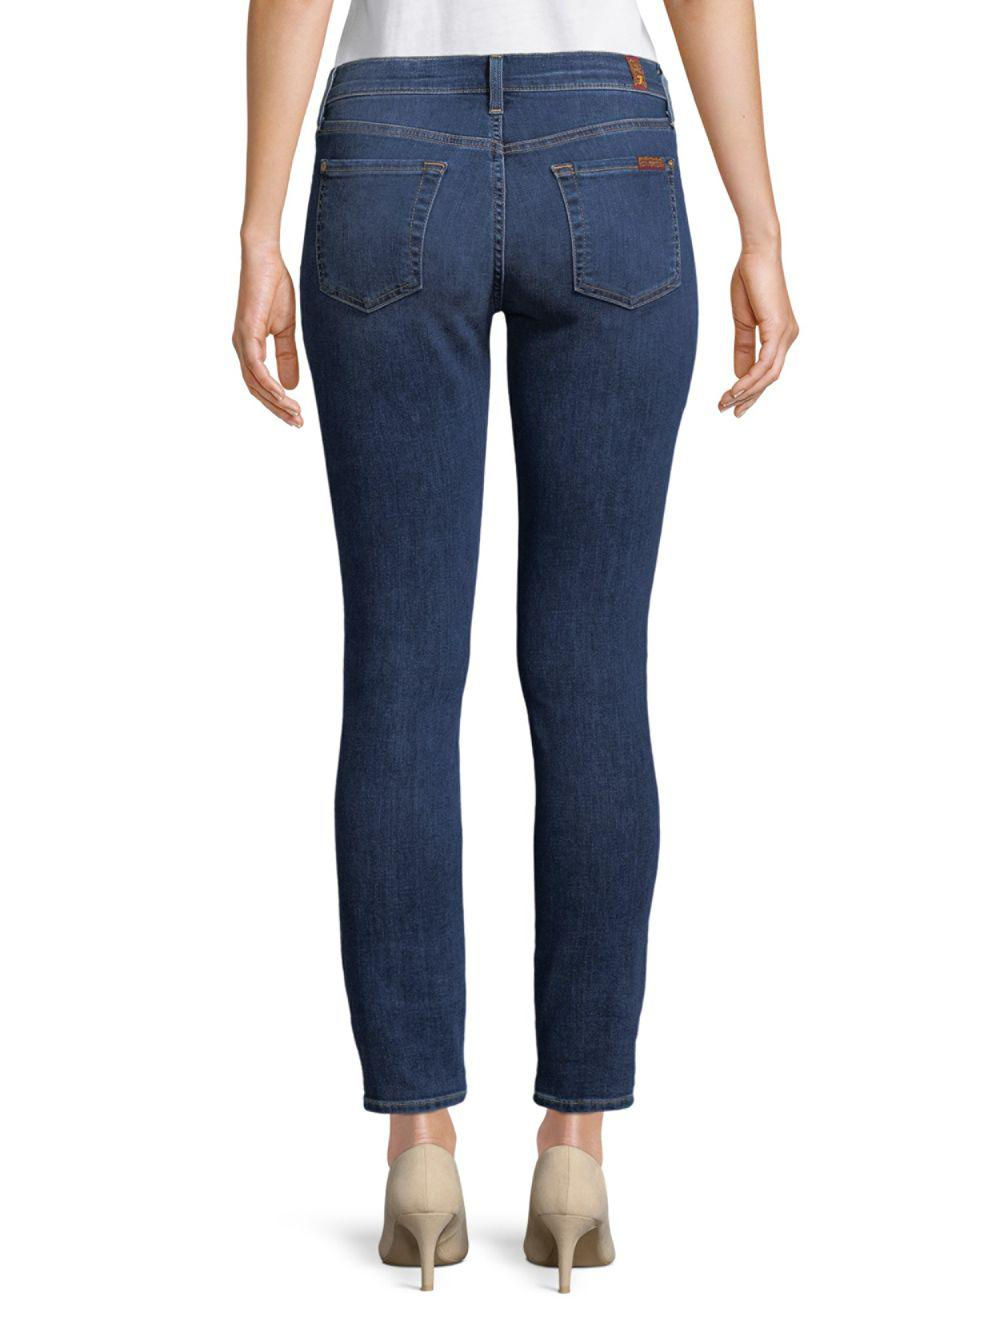 7 For All Mankind Denim The Ankle Skinny Jeans in Blue